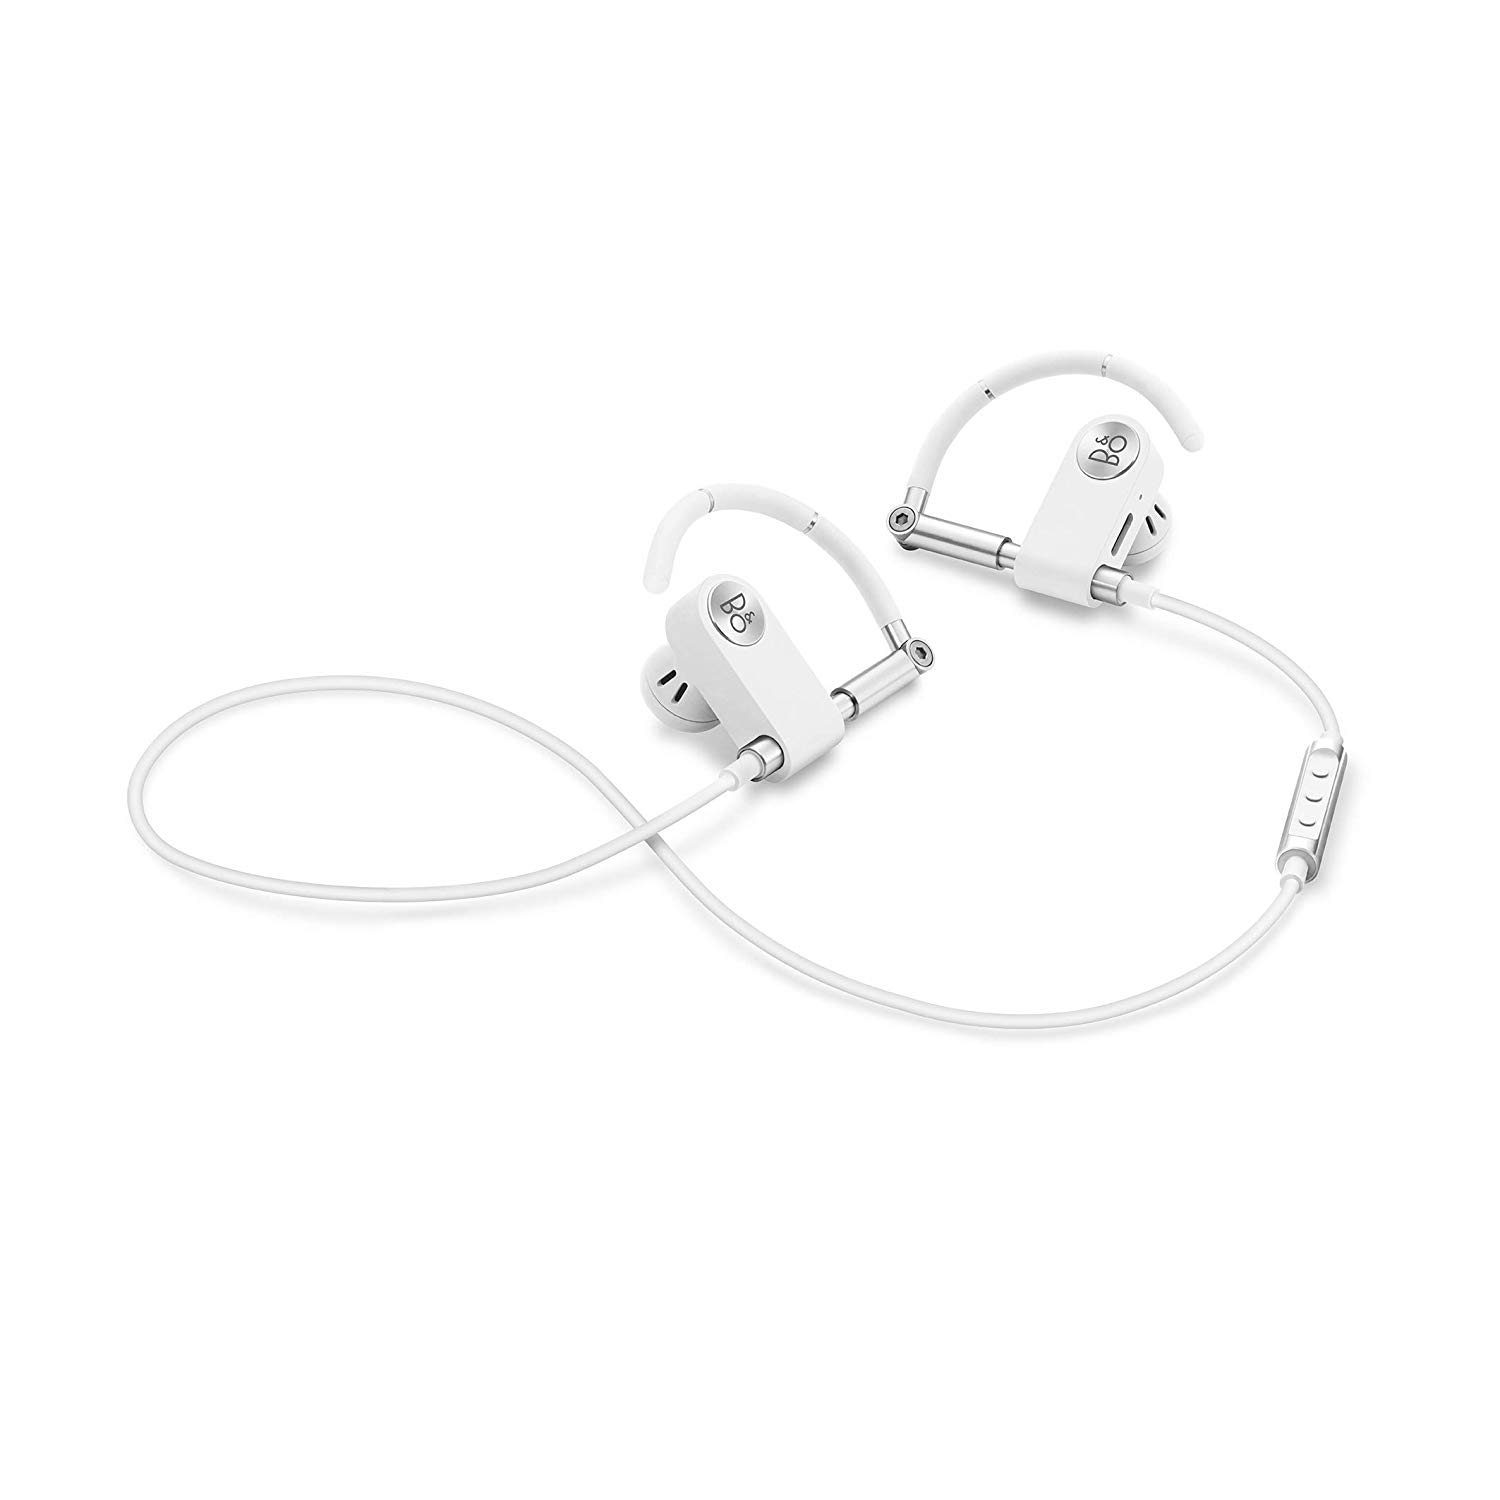 69% off Bang & Olufsen Earset Premium Wireless Earphones